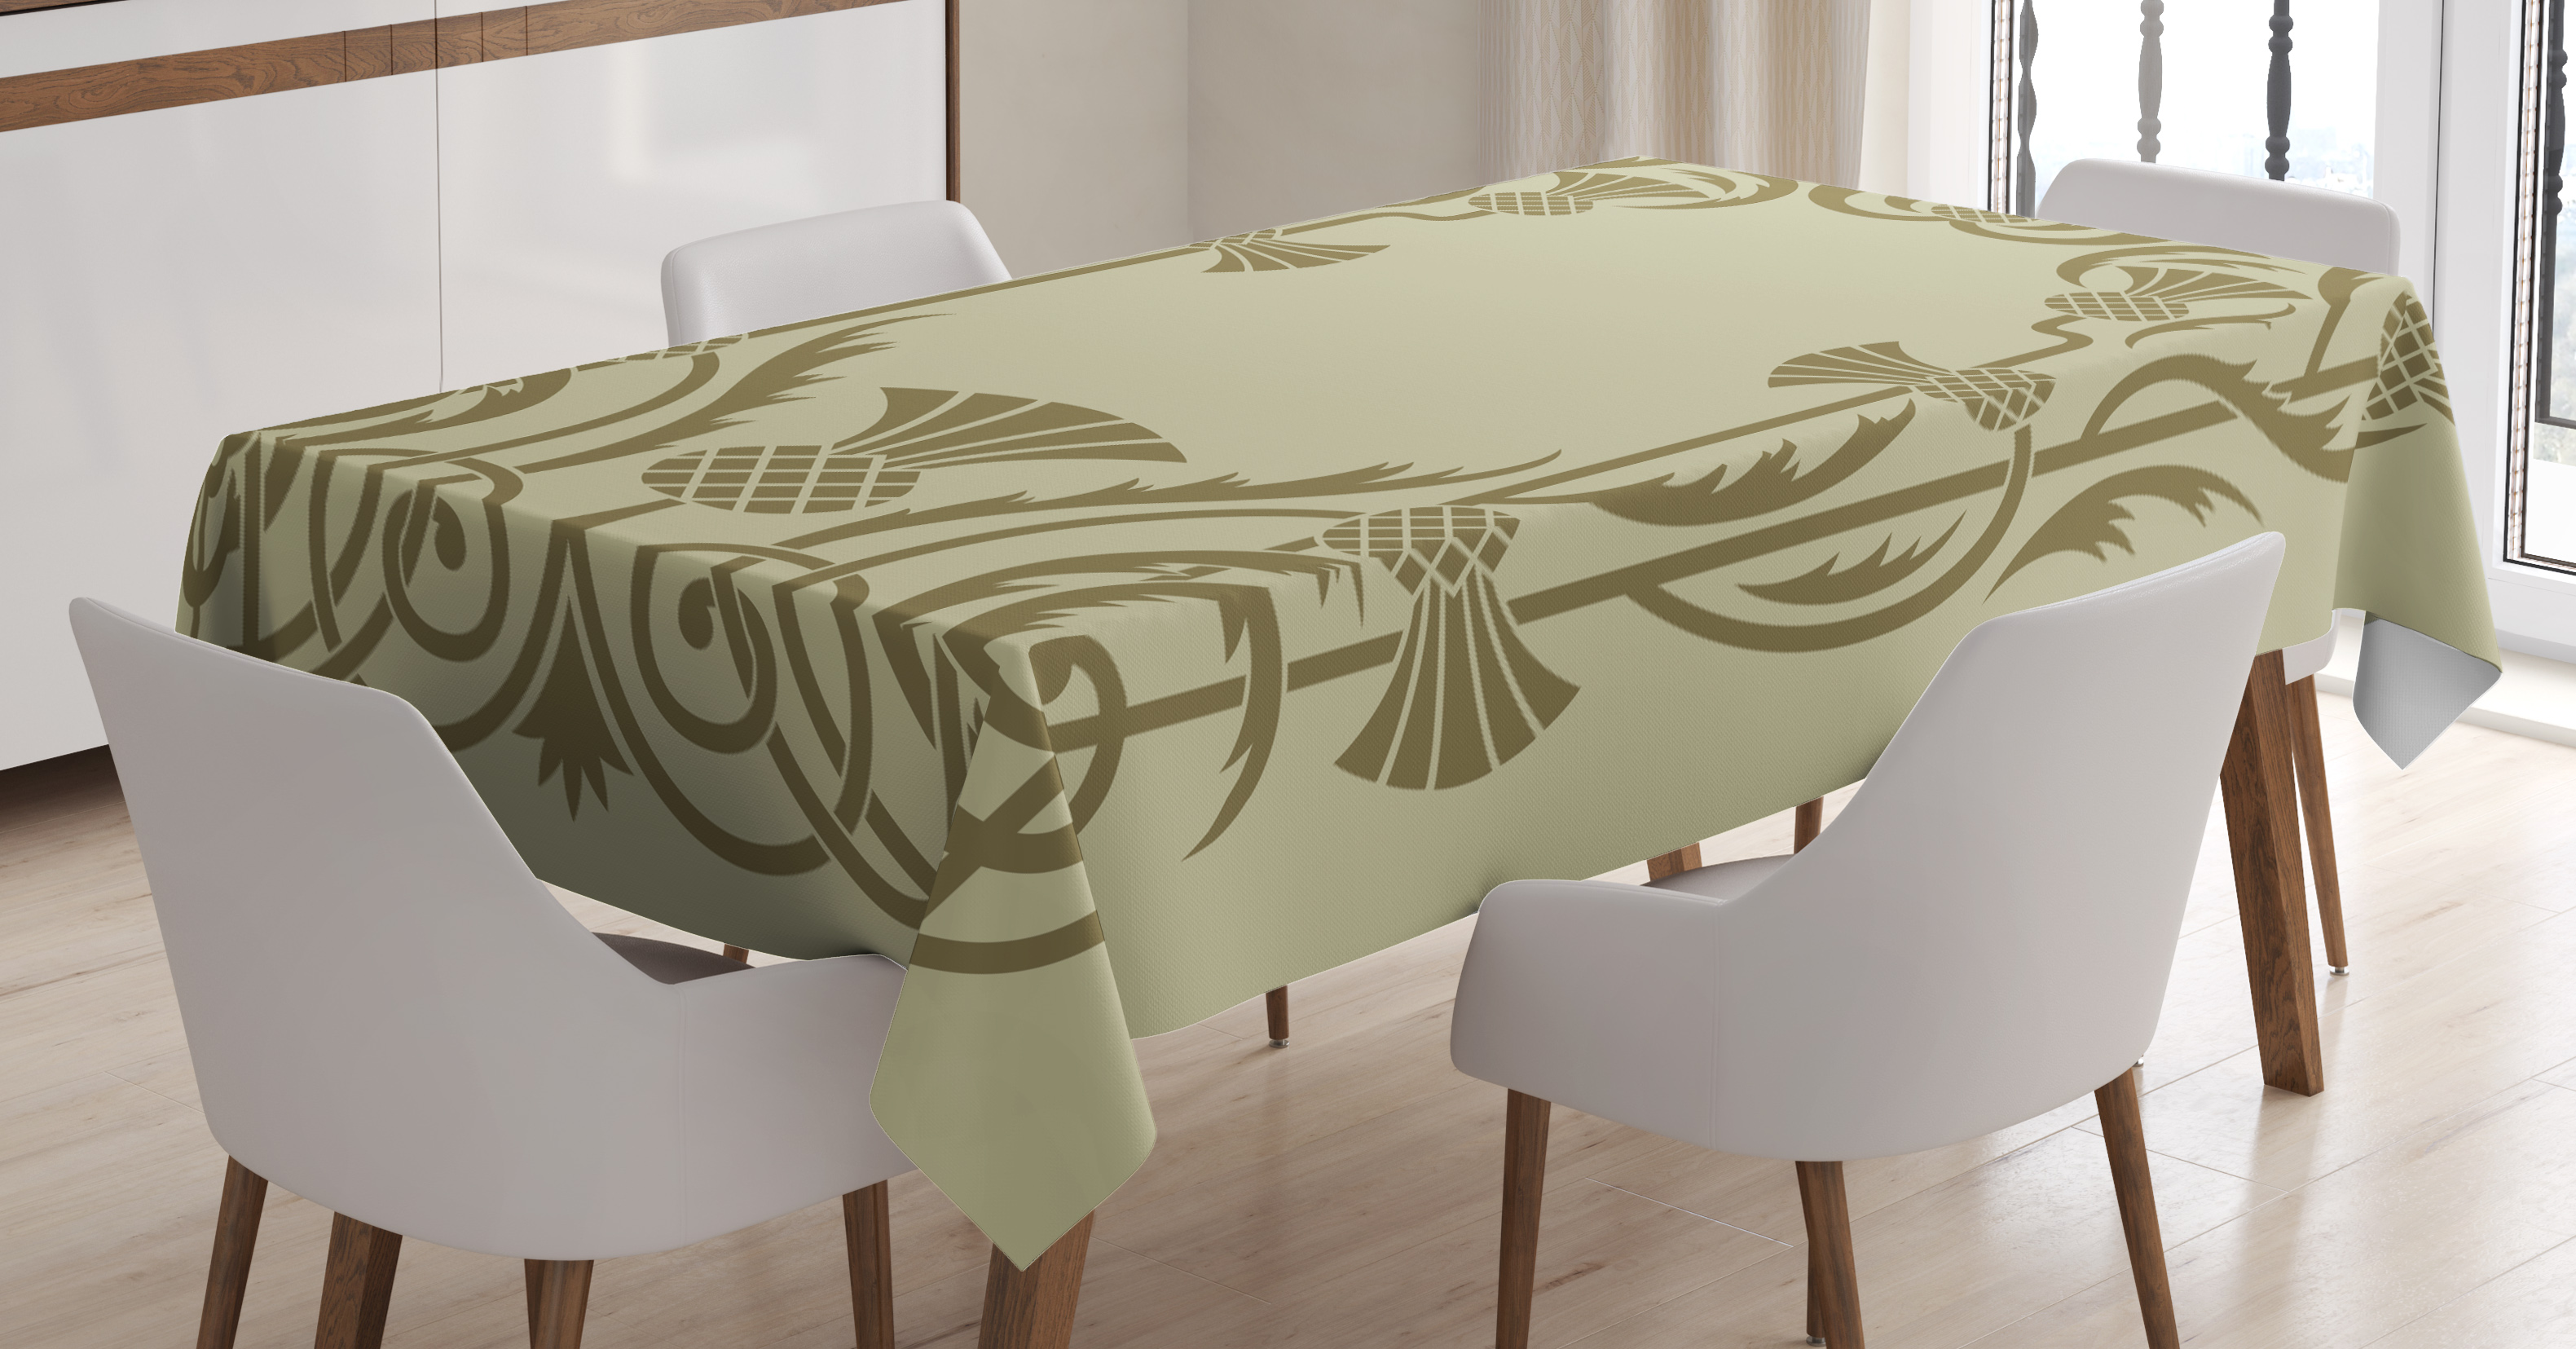 Art nouveau tablecloth botanical framework with pineapples exotic nature inspired antique look rectangular table cover for dining room kitchen